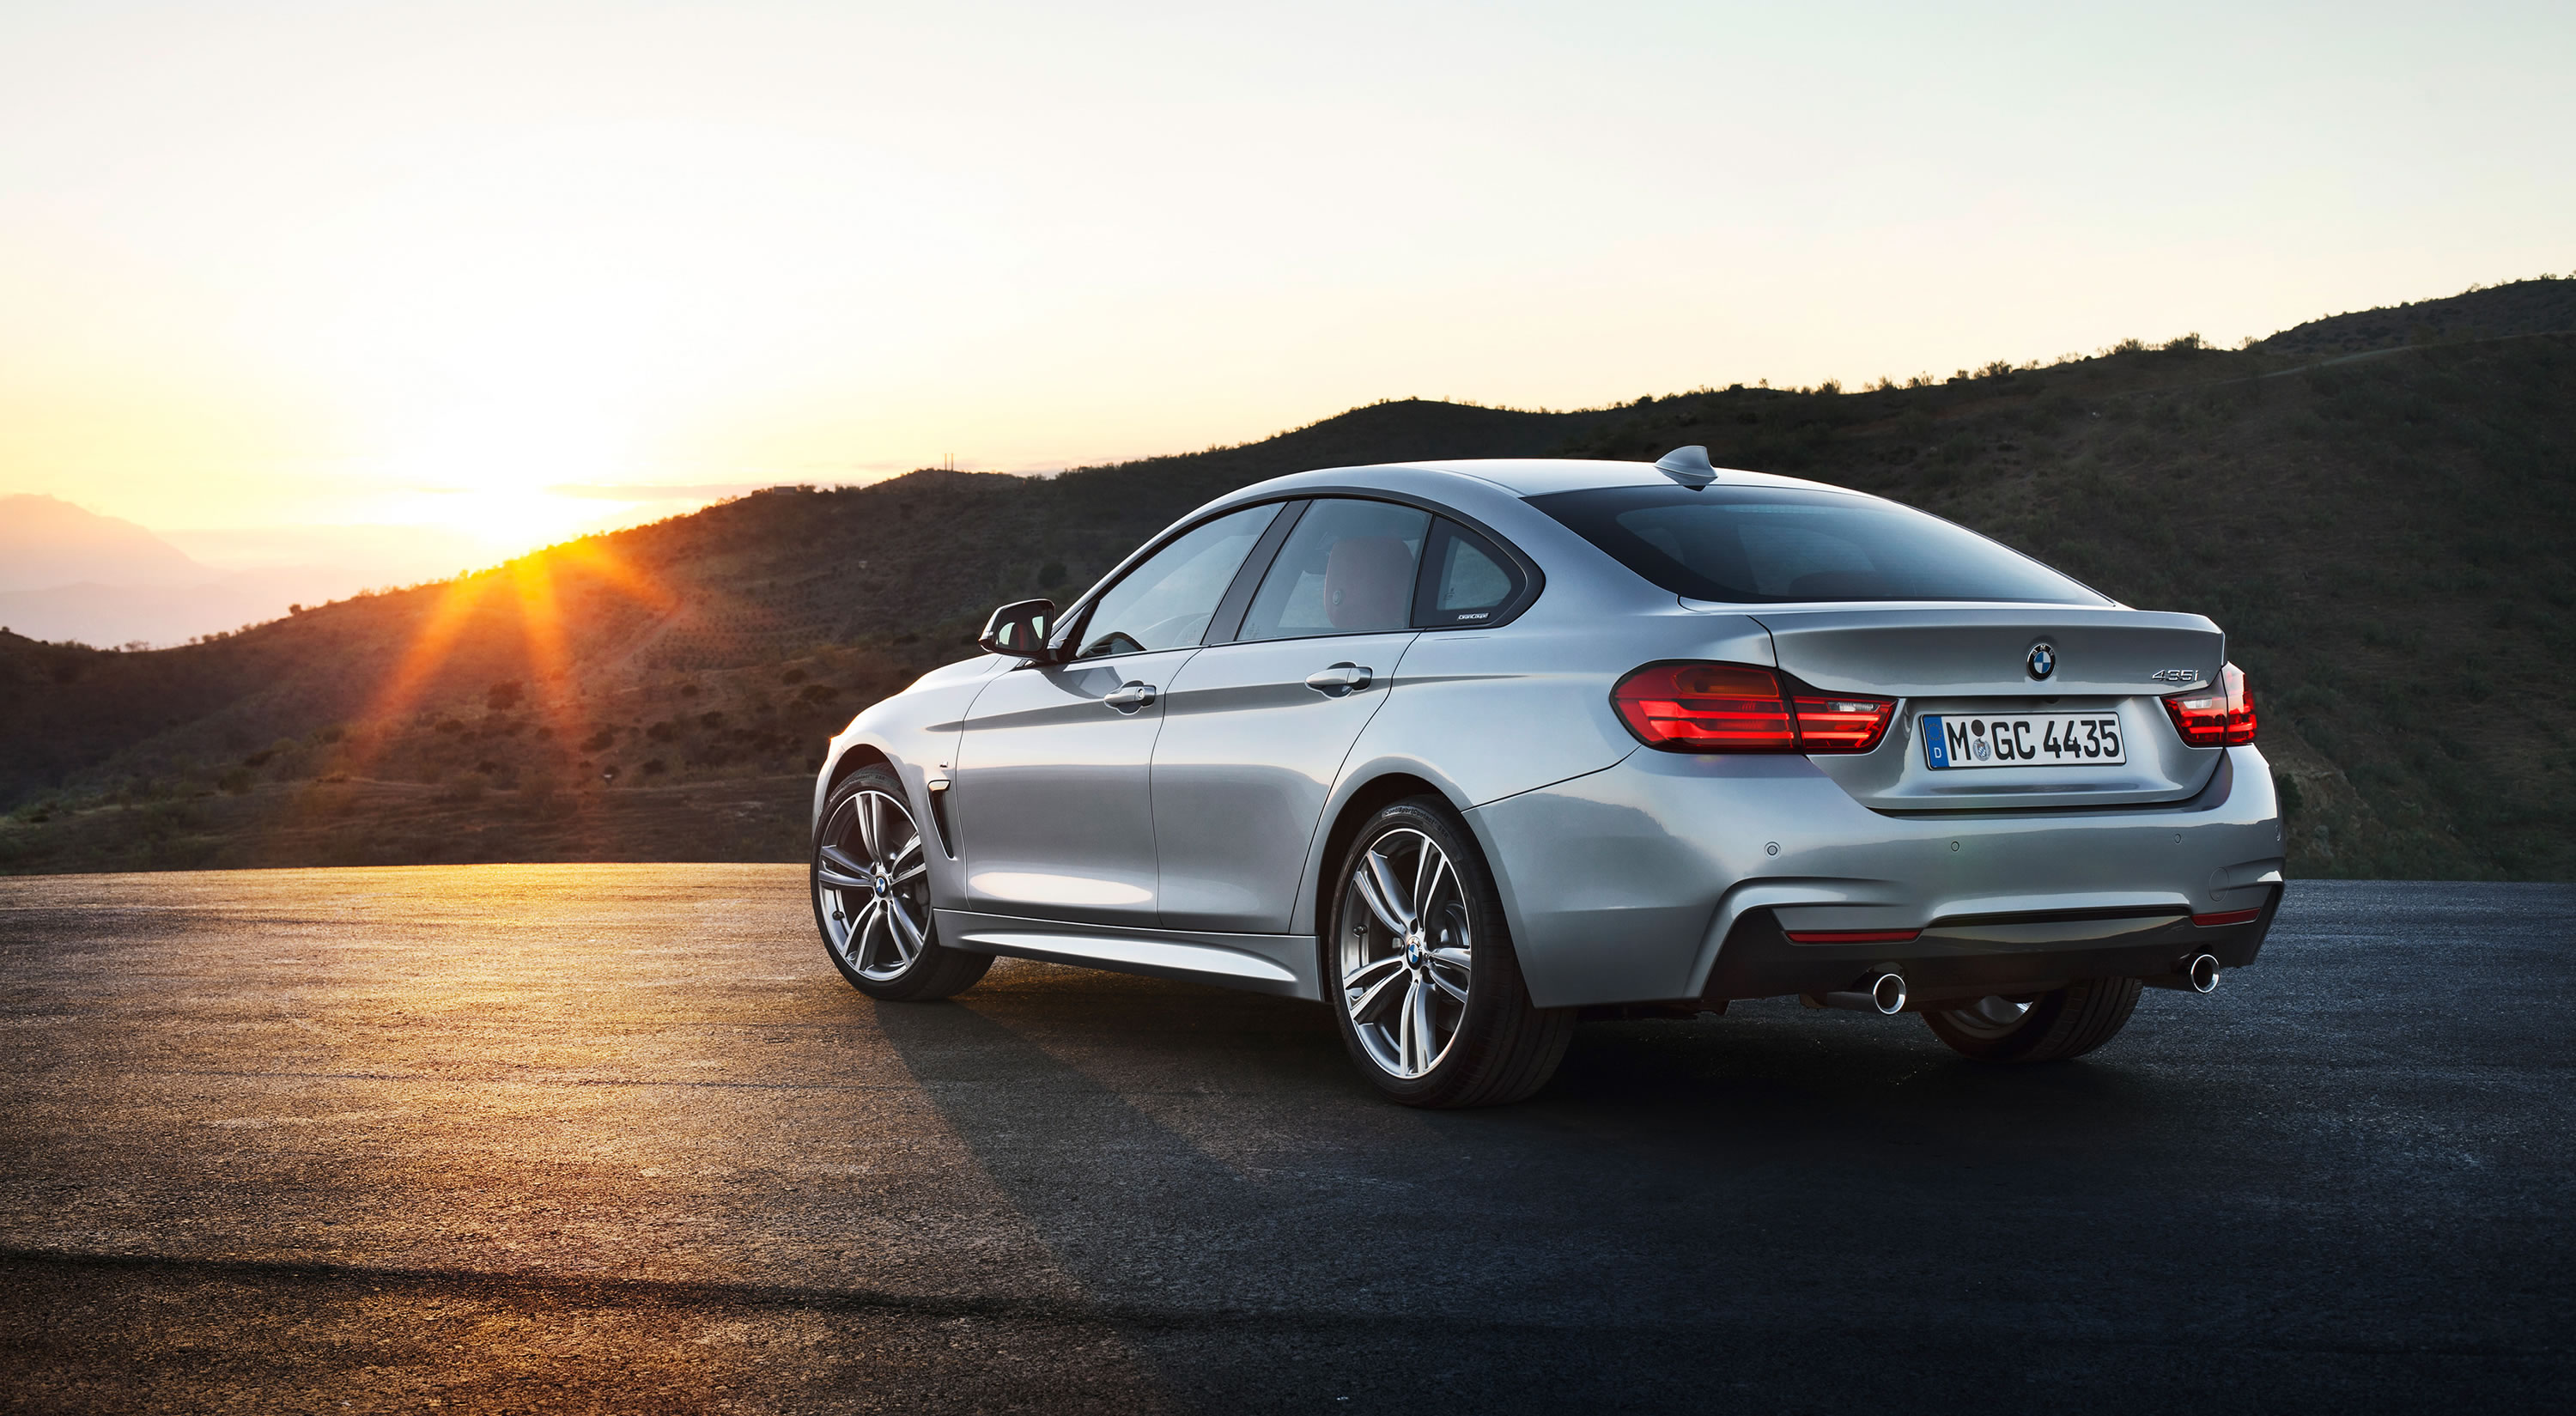 2015 bmw 435i gran coupe m sport photos, specs and review - rs